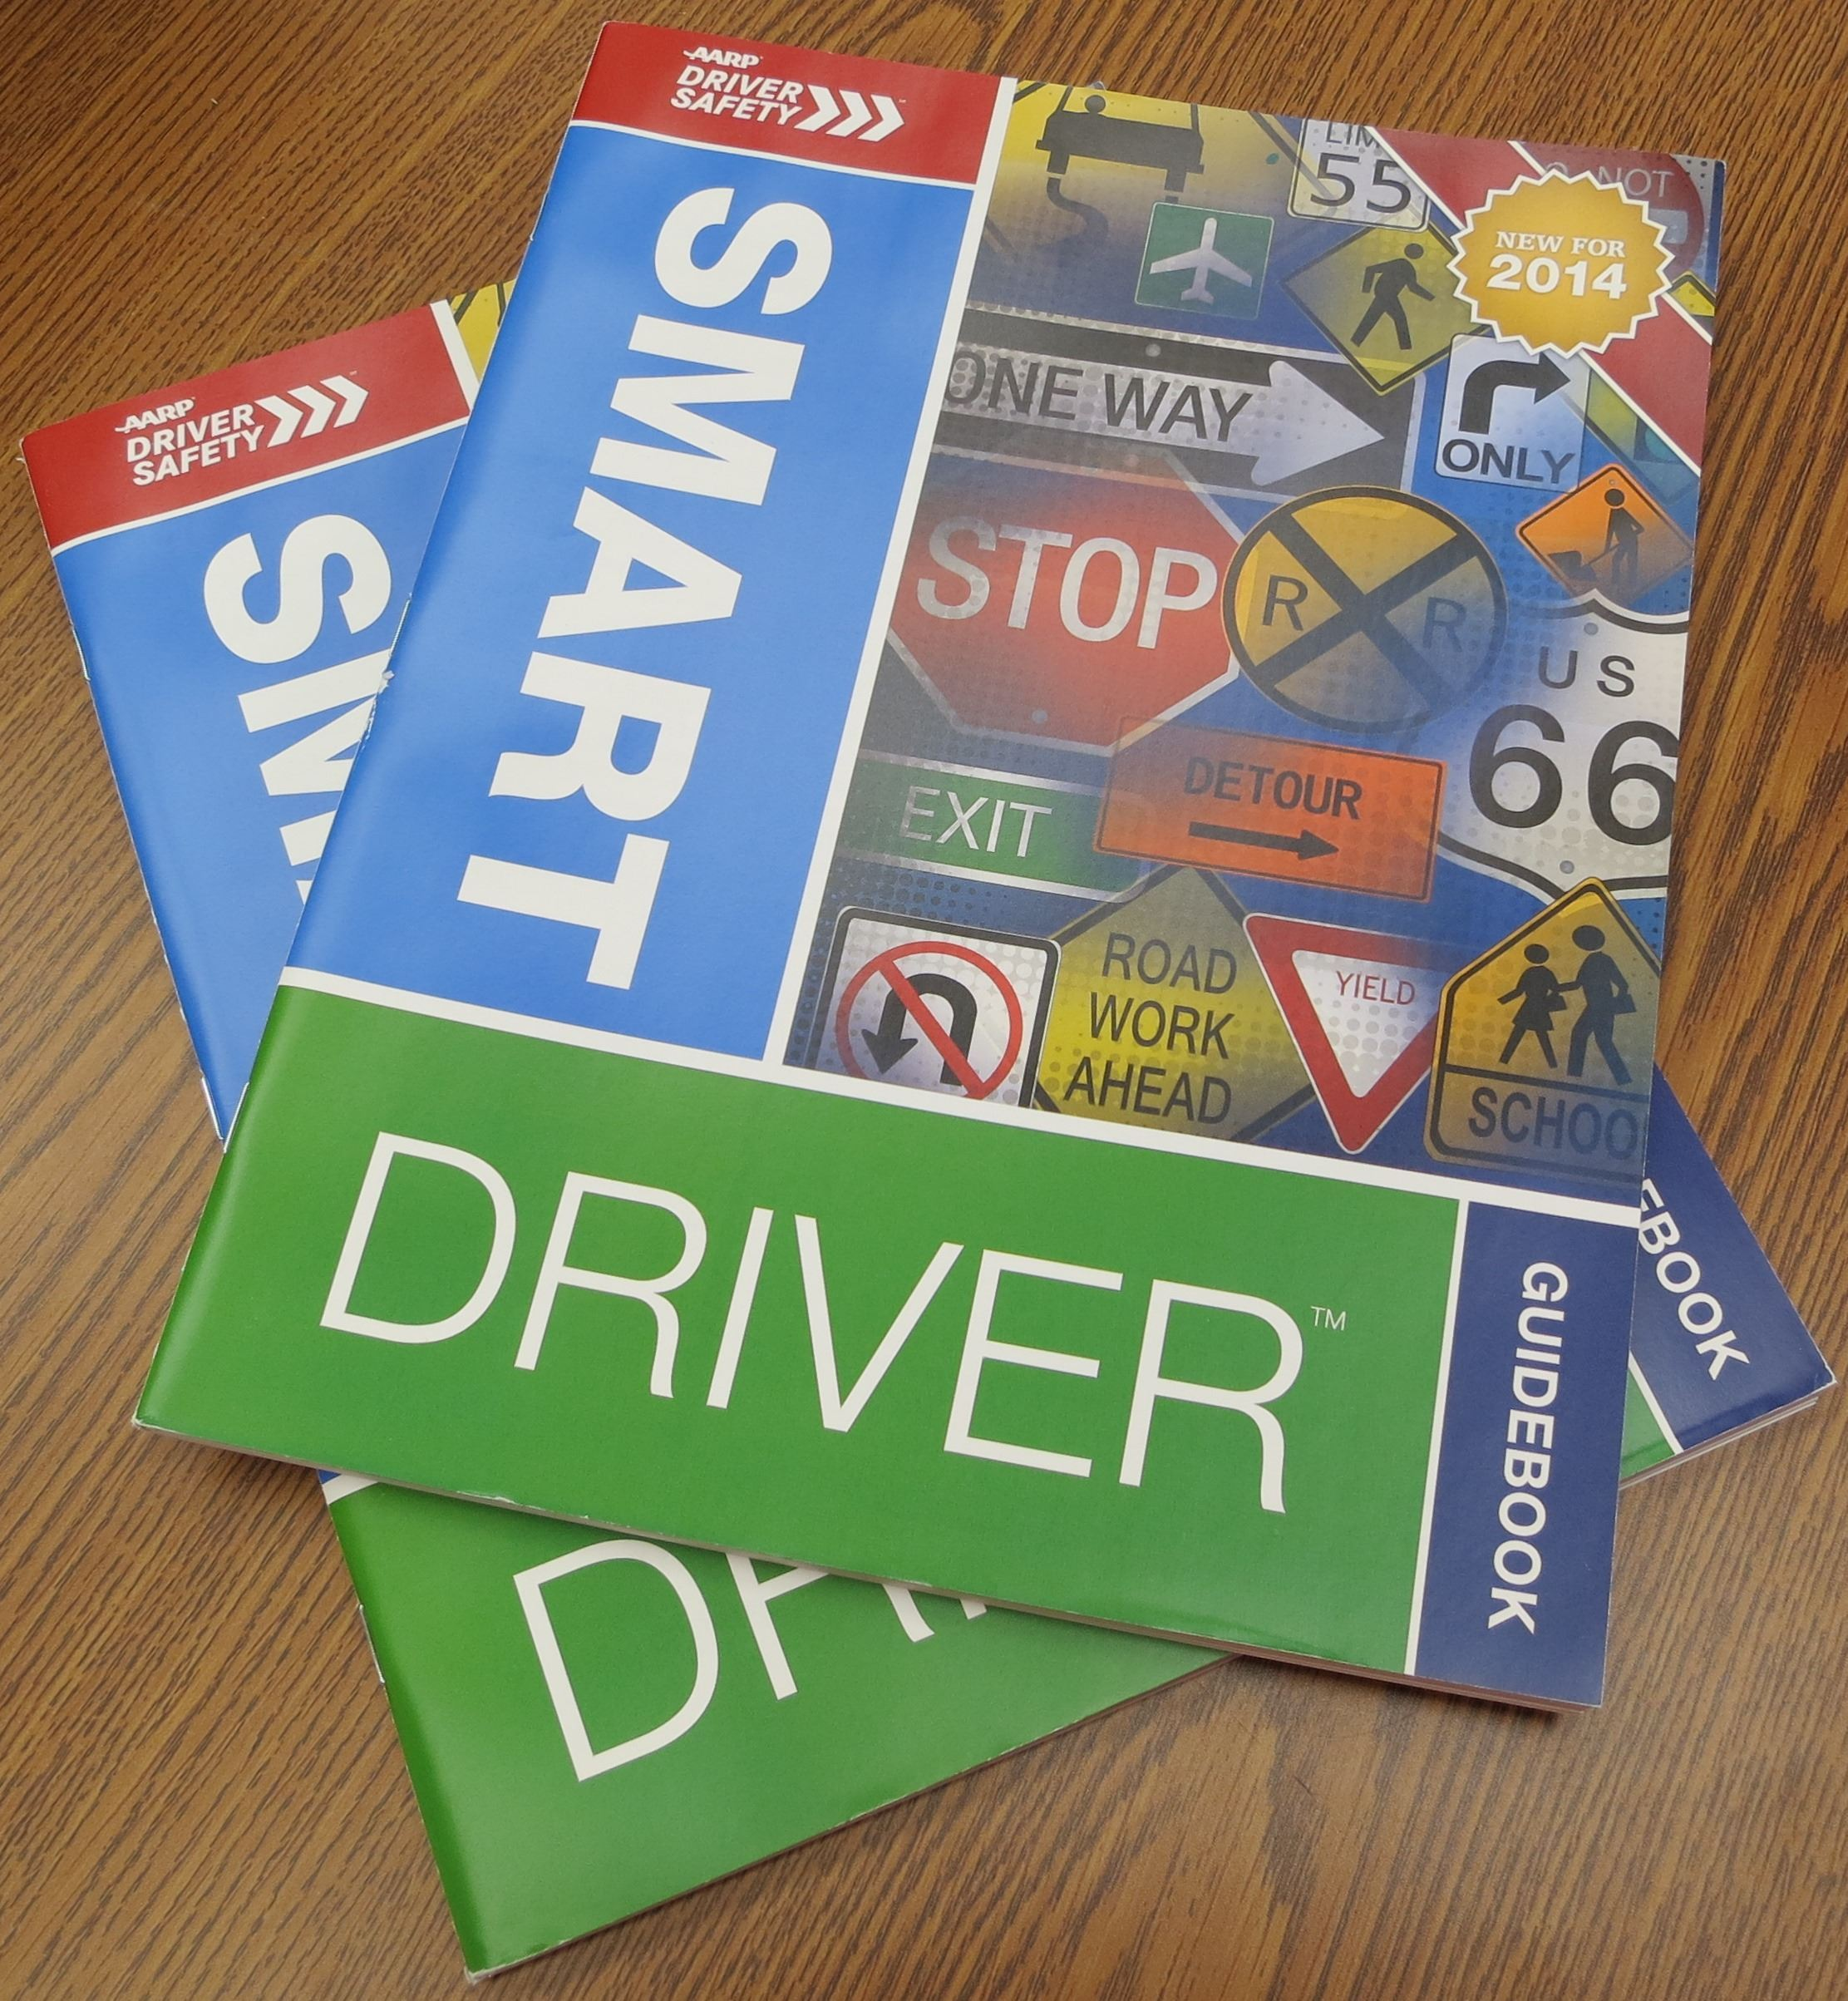 AARP Driver Safety Course Image (1)